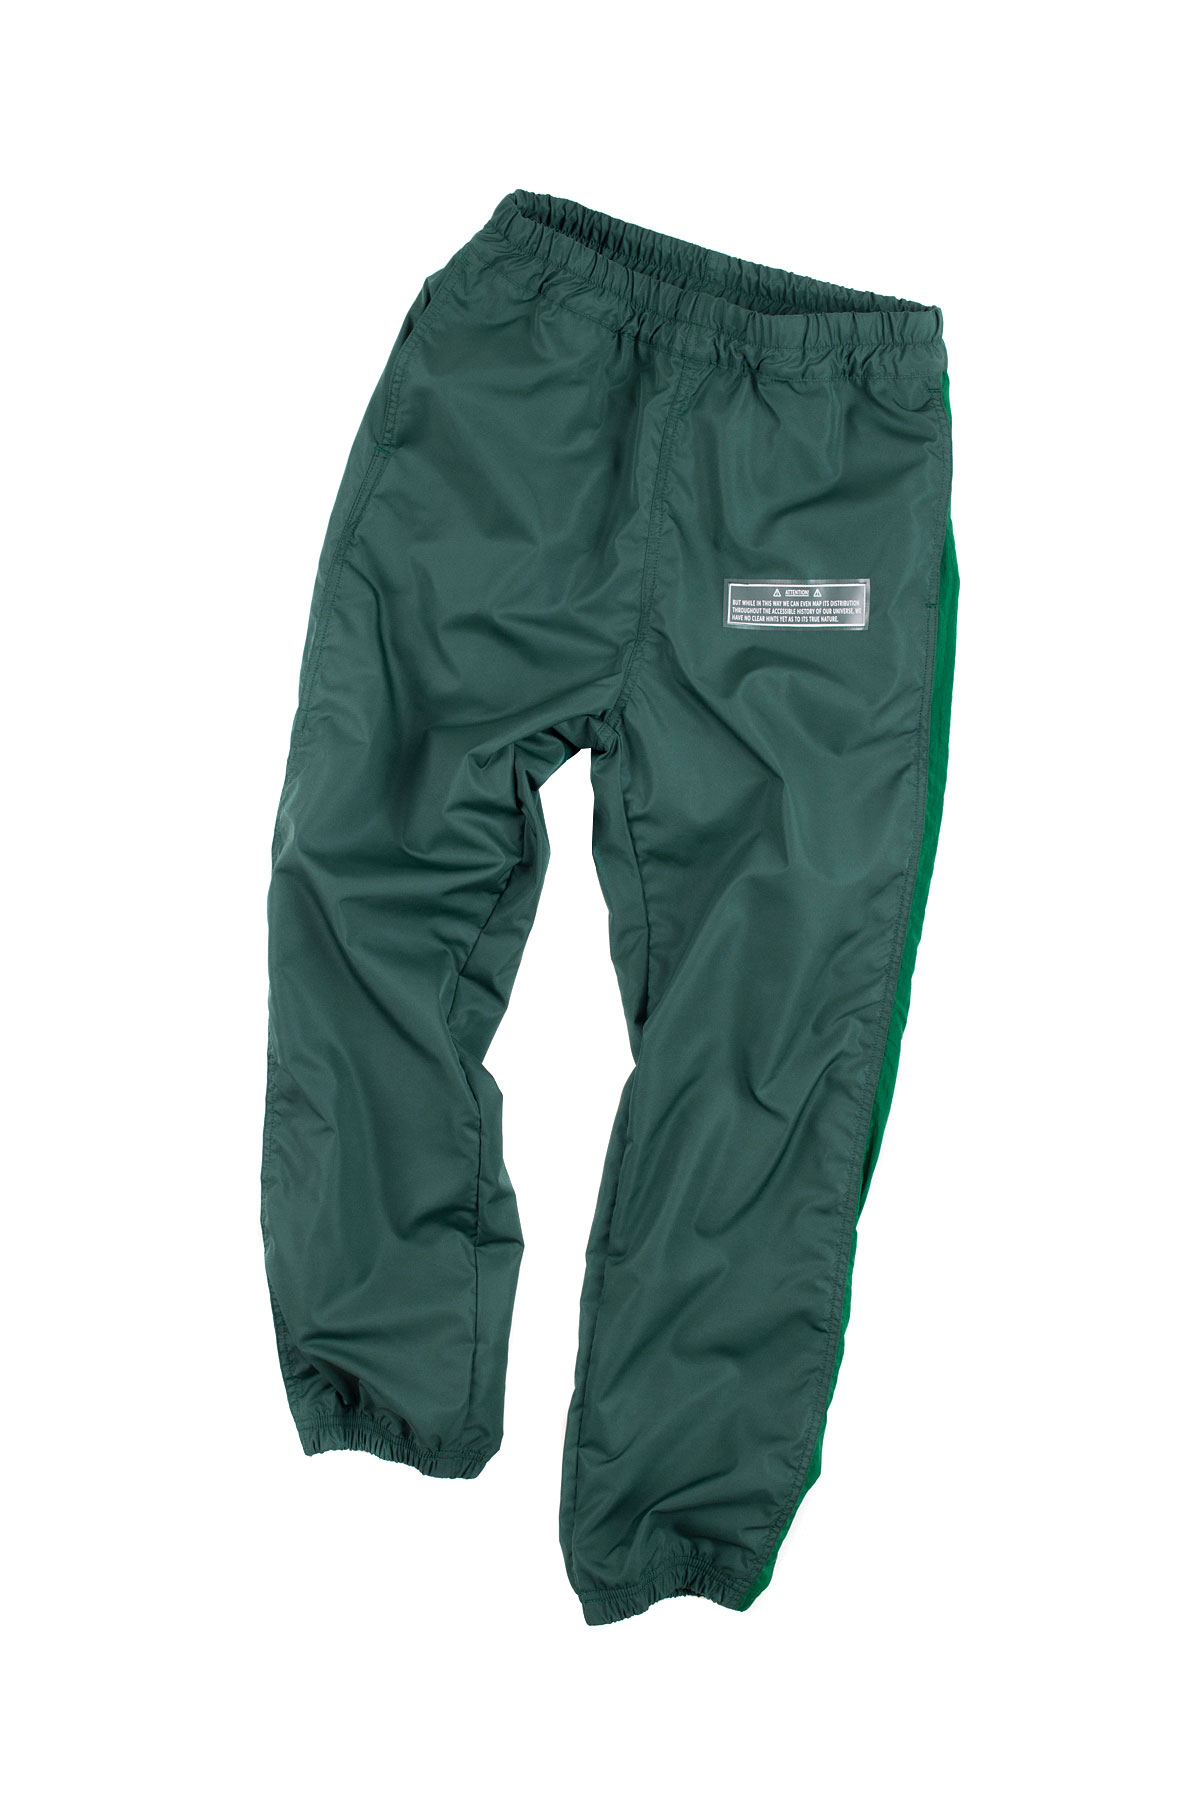 JieDa : Switching Nylon Pants (Green)